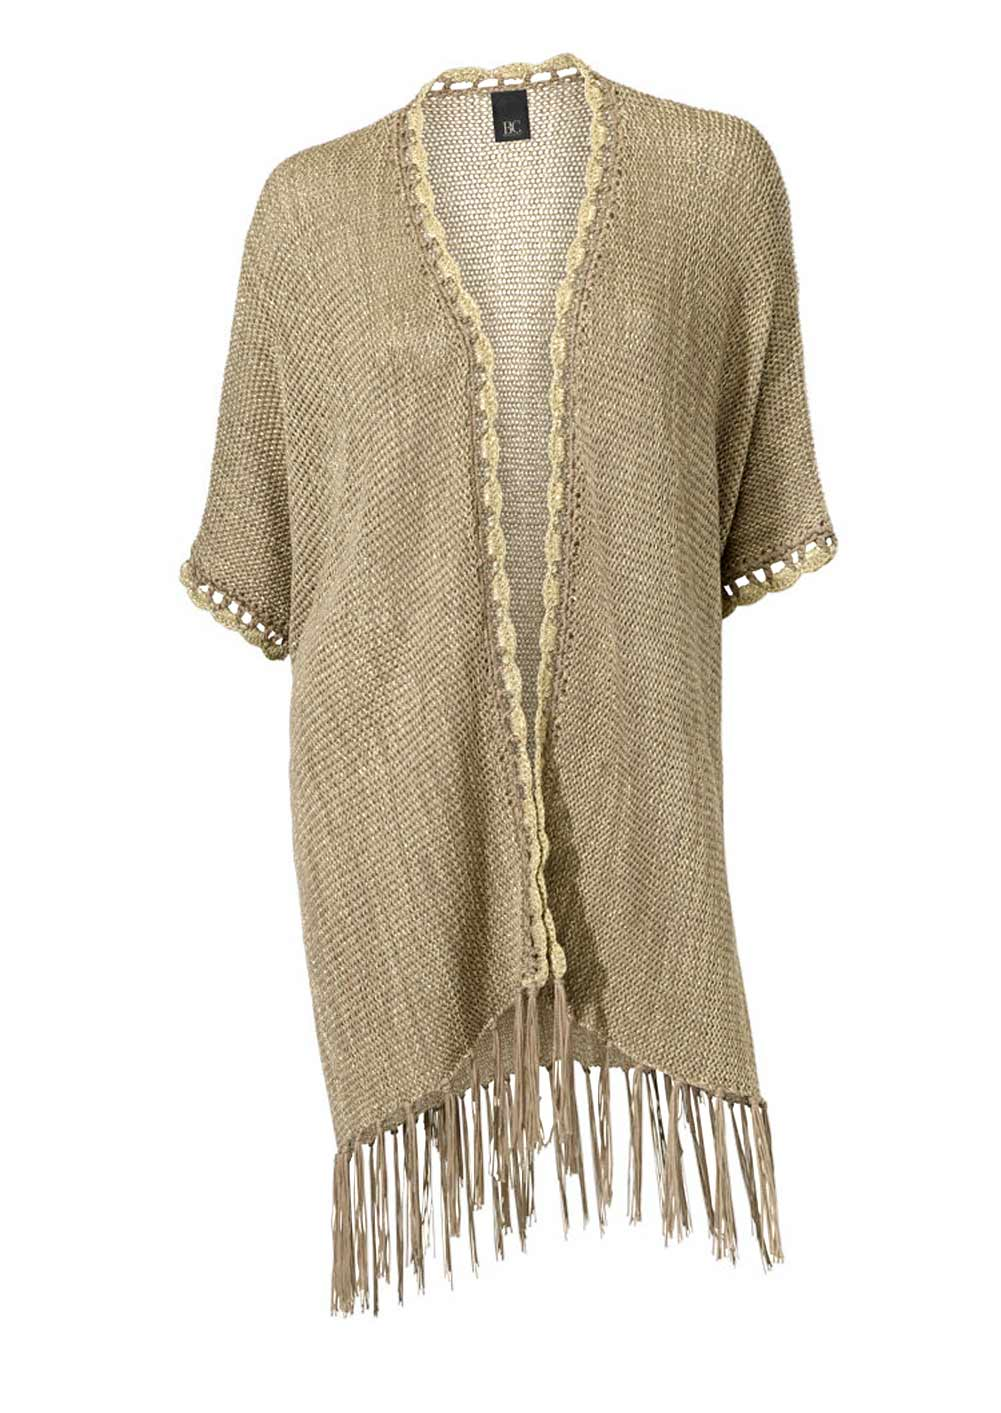 Heine - Best Connections Poncho taupe-gold 088.502 Missforty